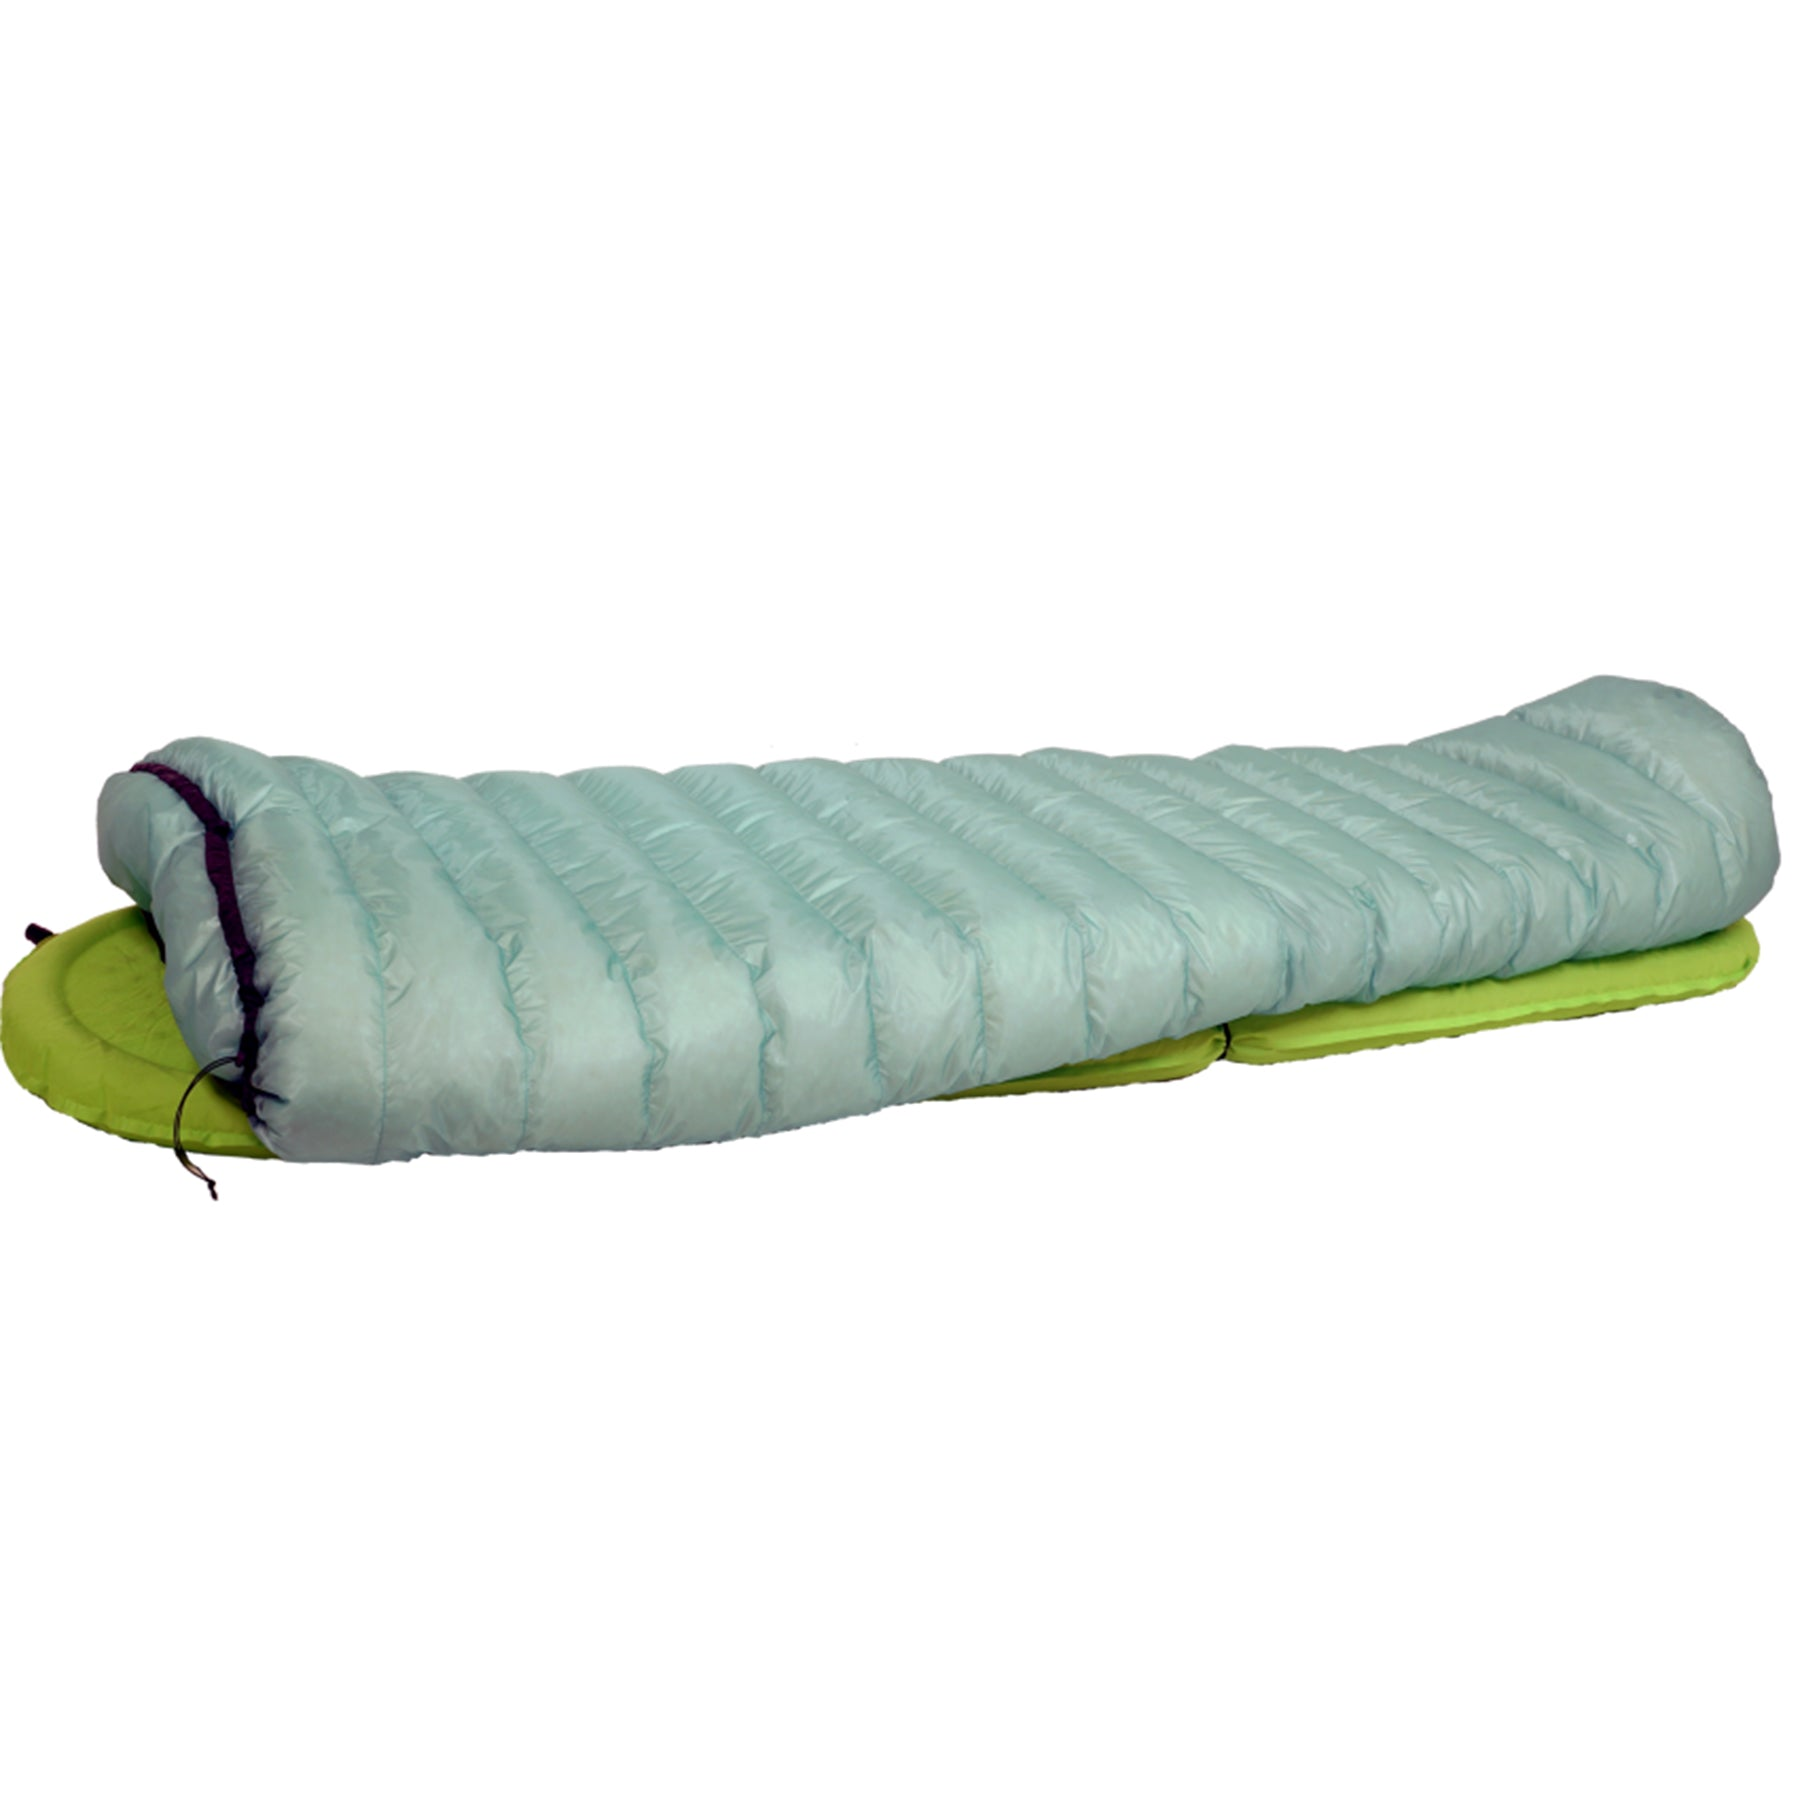 ASTRALITE SLEEPING BAG ATTACHED TO A SLEEPING PAD